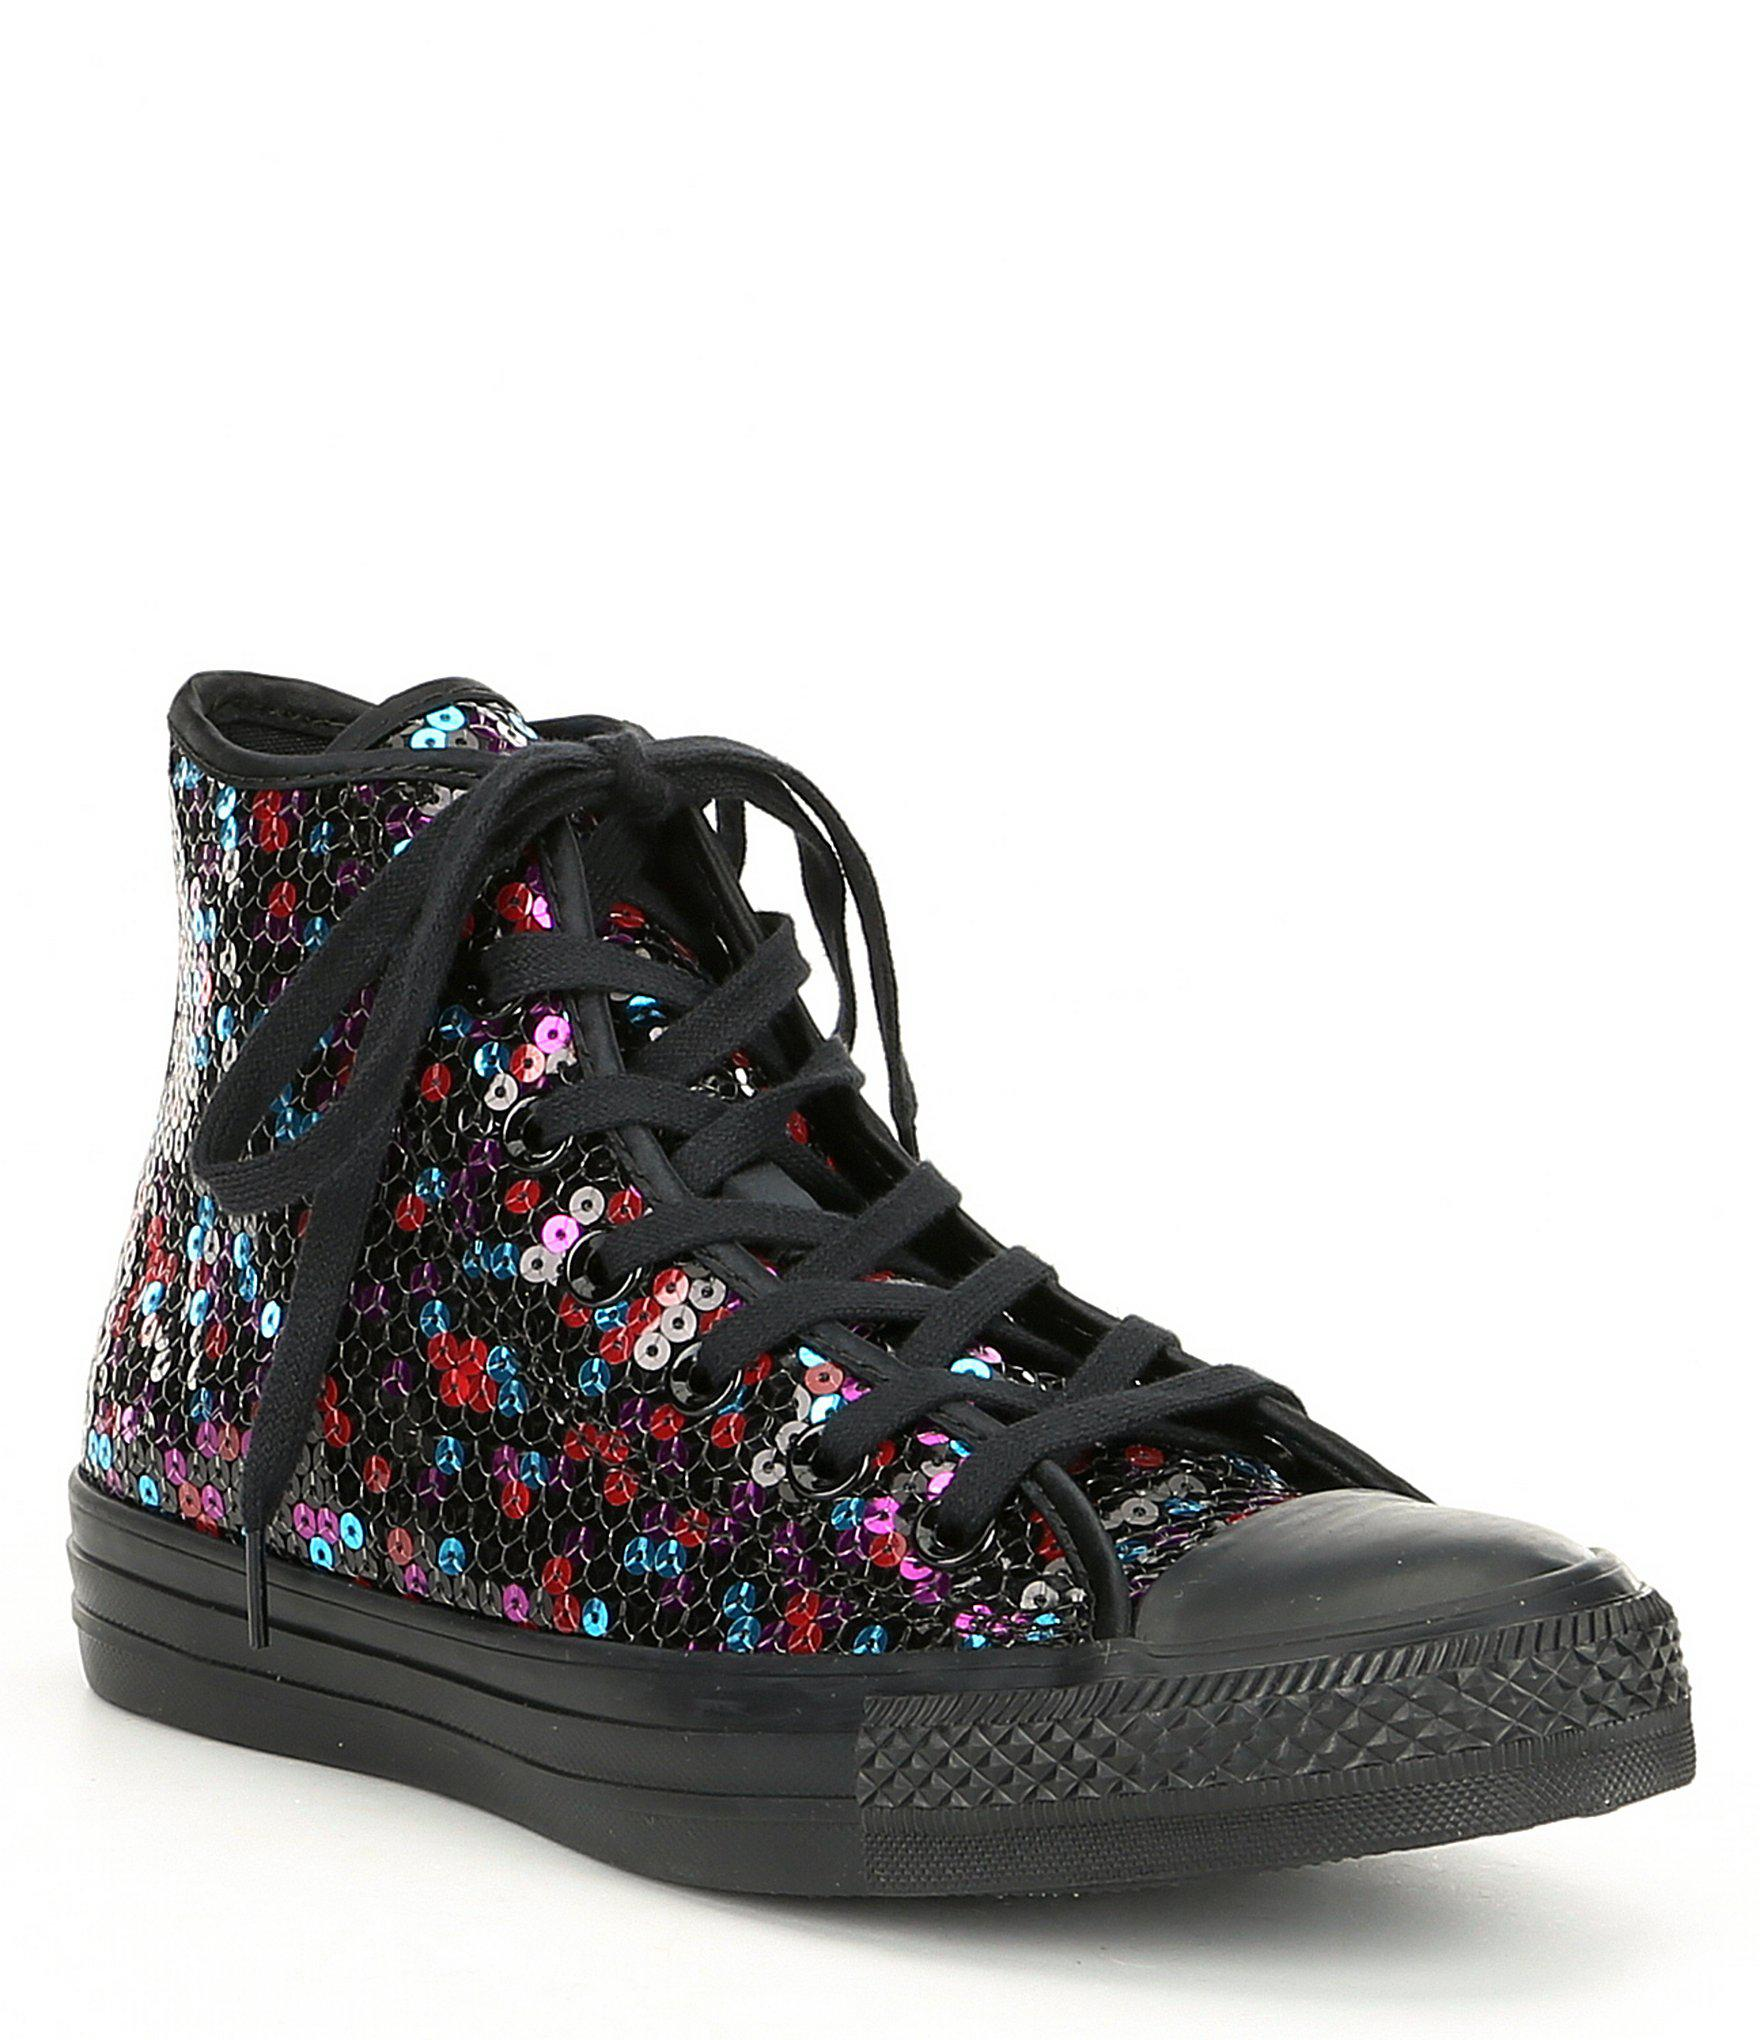 Converse Top Star Taylor Sequined Multi Hi Chuck Colored All rnqTv8xrw6